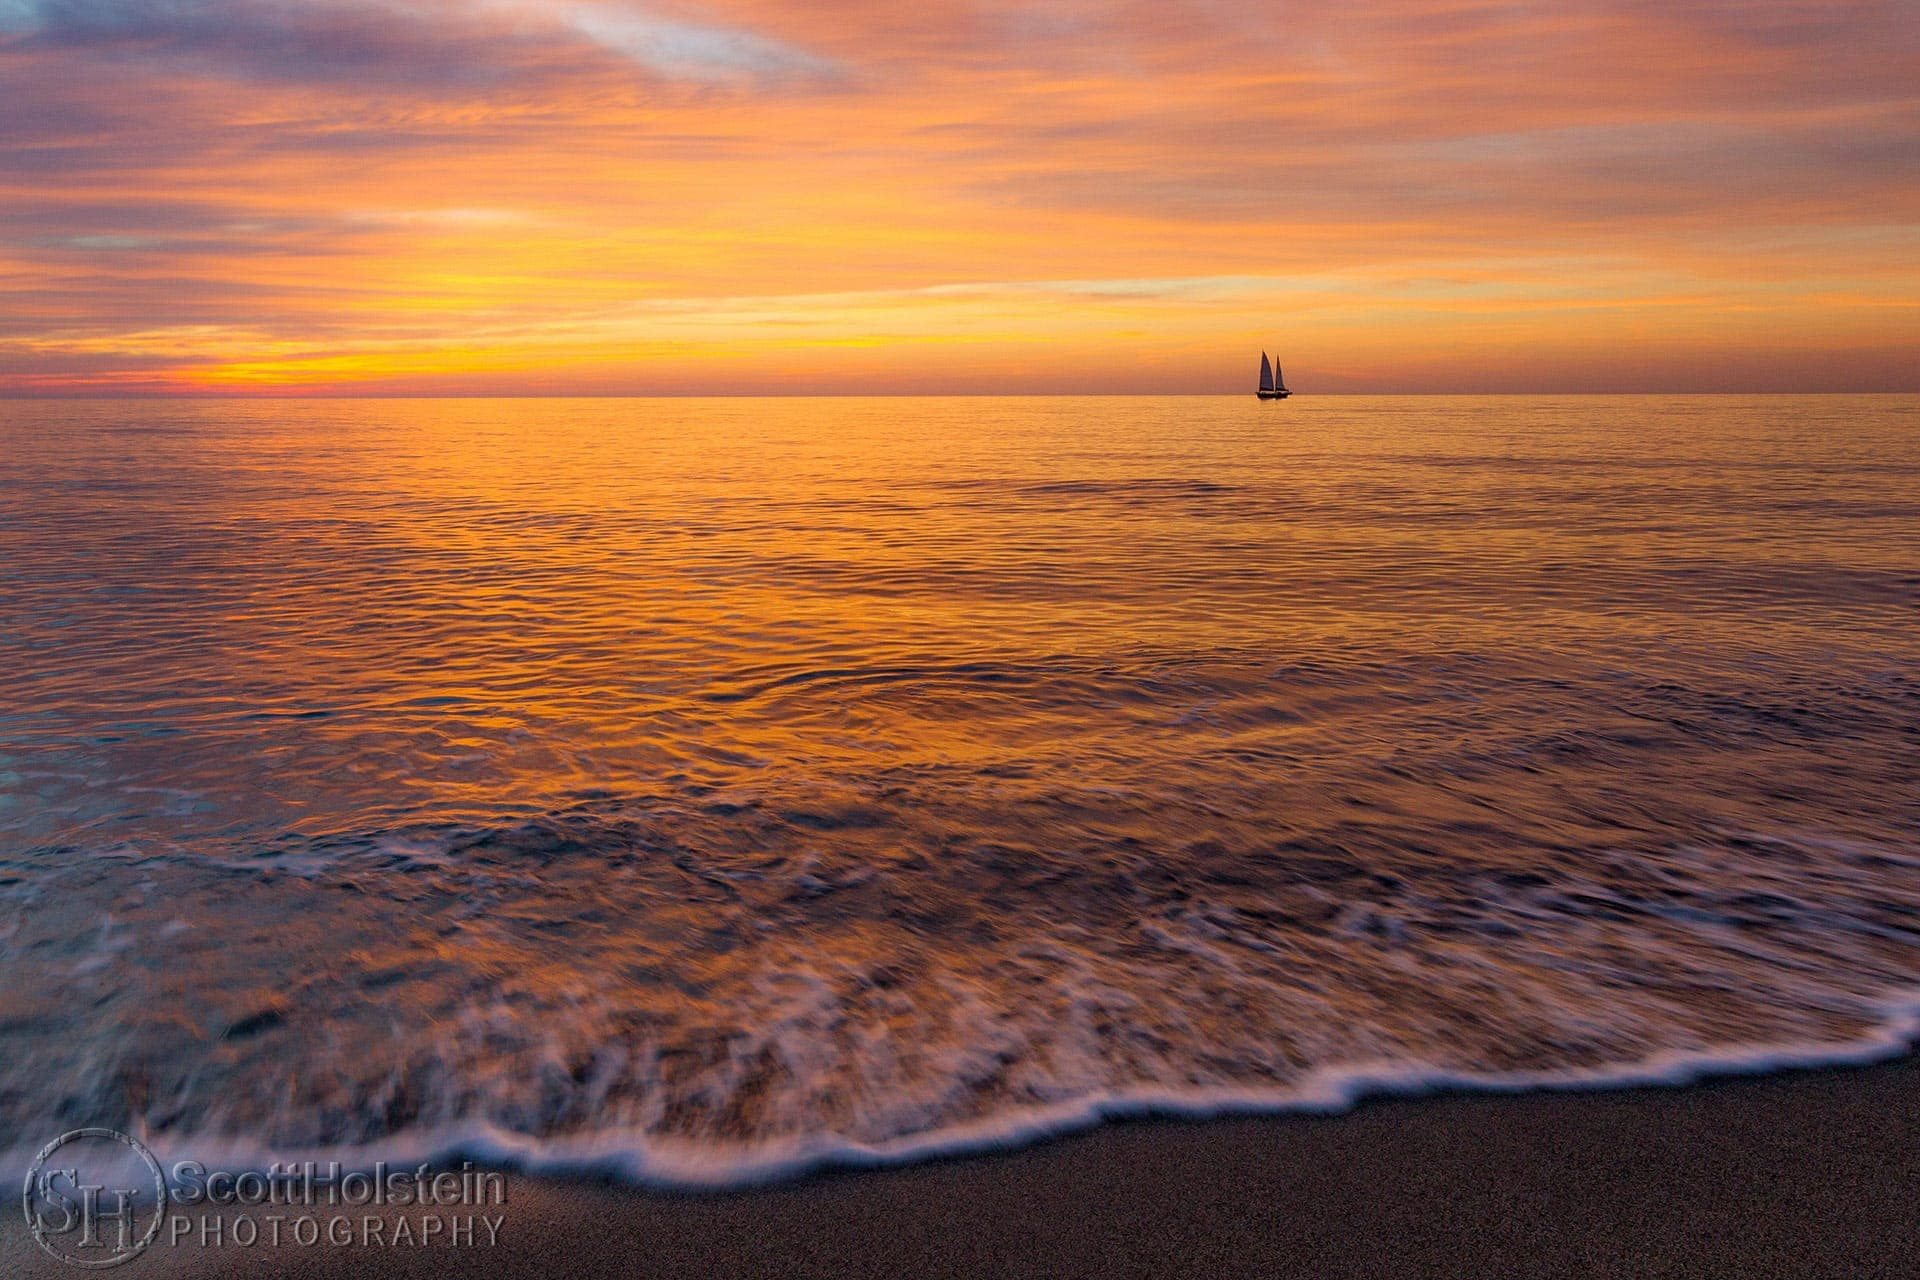 A sailboat sails on the horizon during a pastel sunset off of the beach in Venice, Florida.